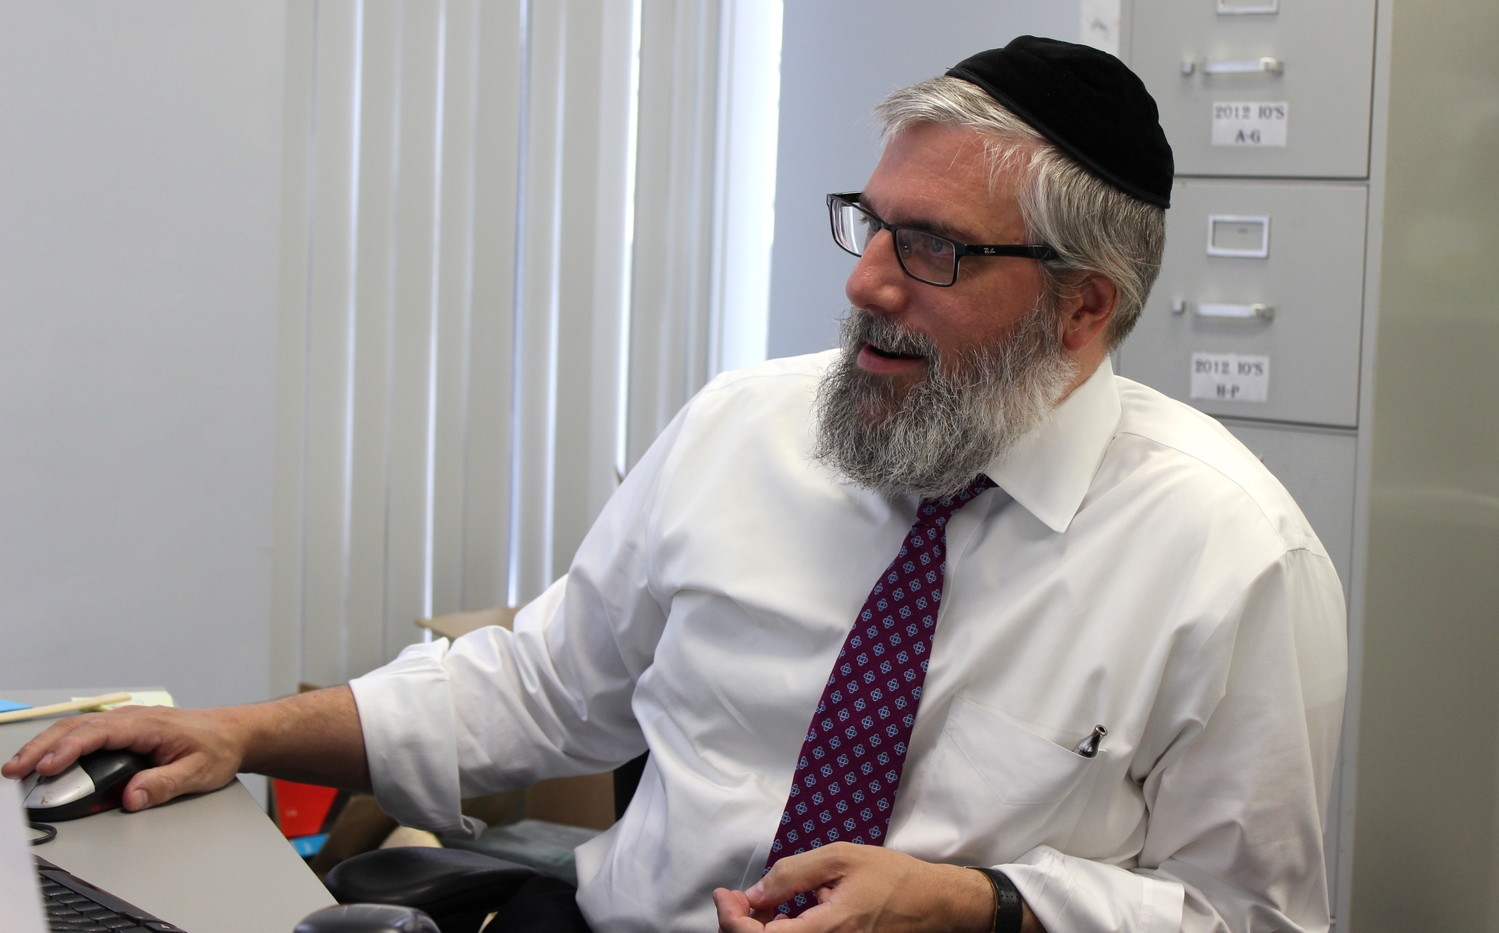 Amud Aish Memorial Museum Director Rabbi Sholom Friedmann is a child of a Shoah survivor.